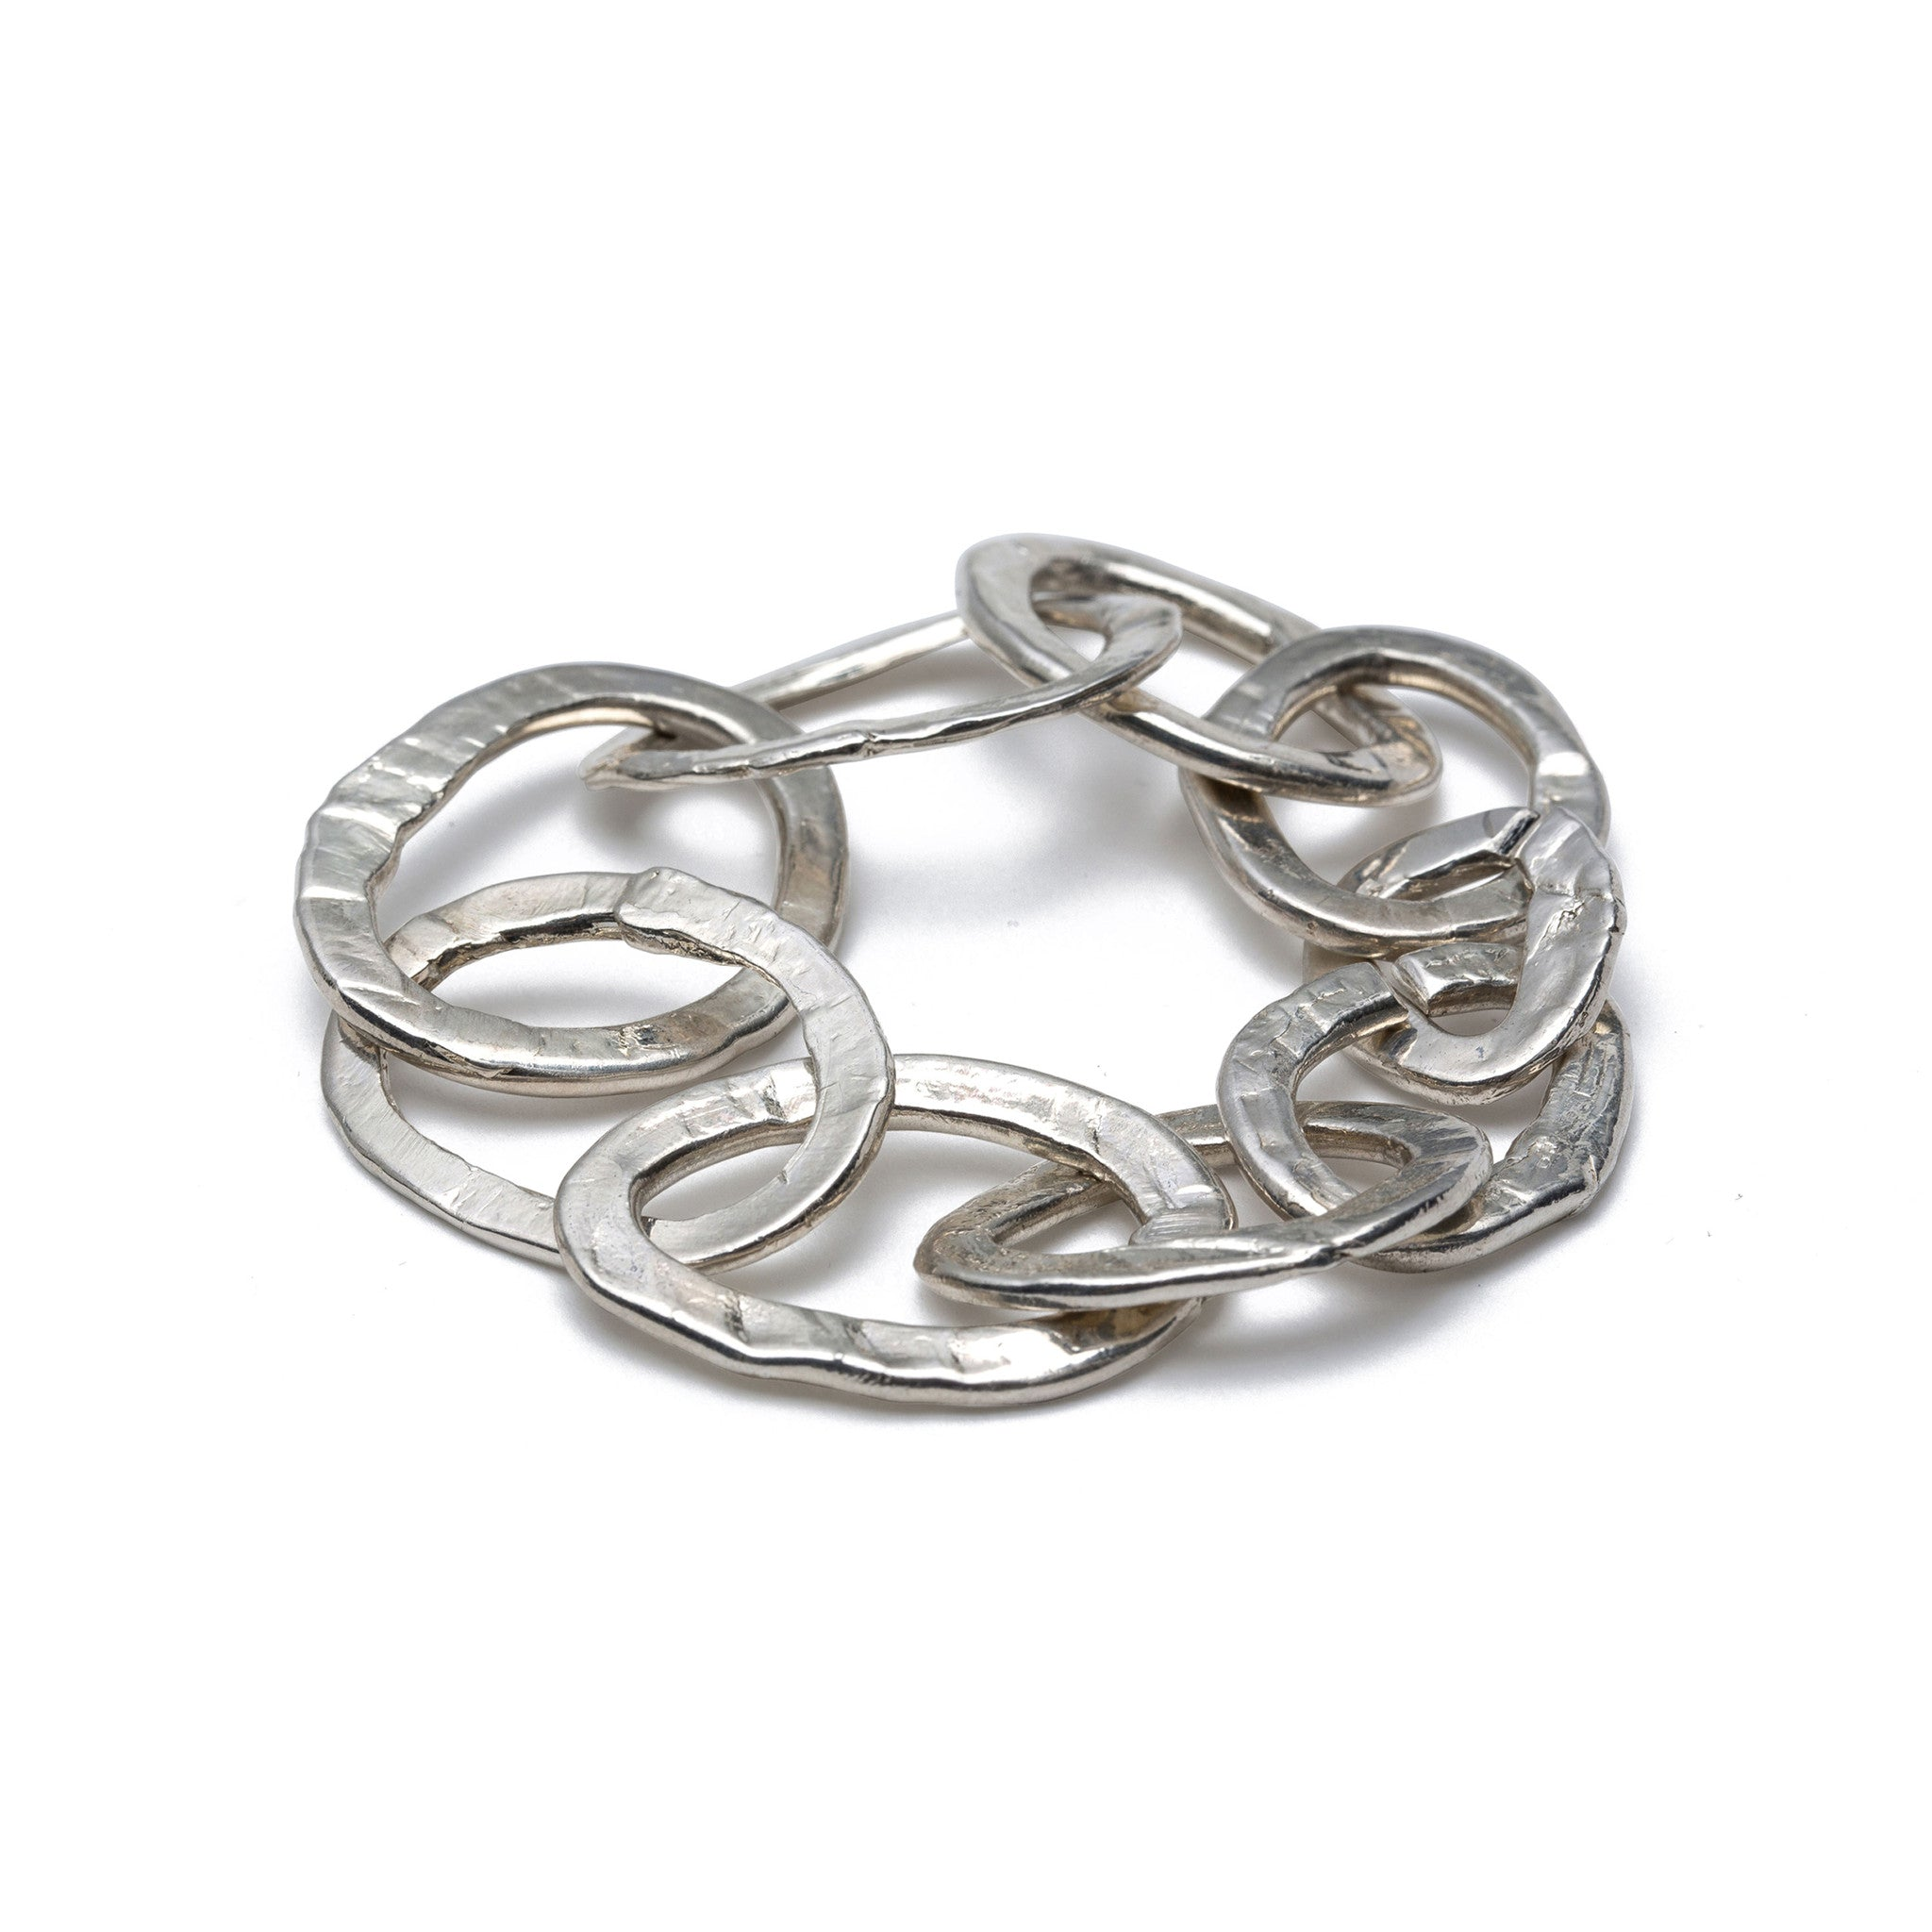 chain link bracelet made with sterling silver